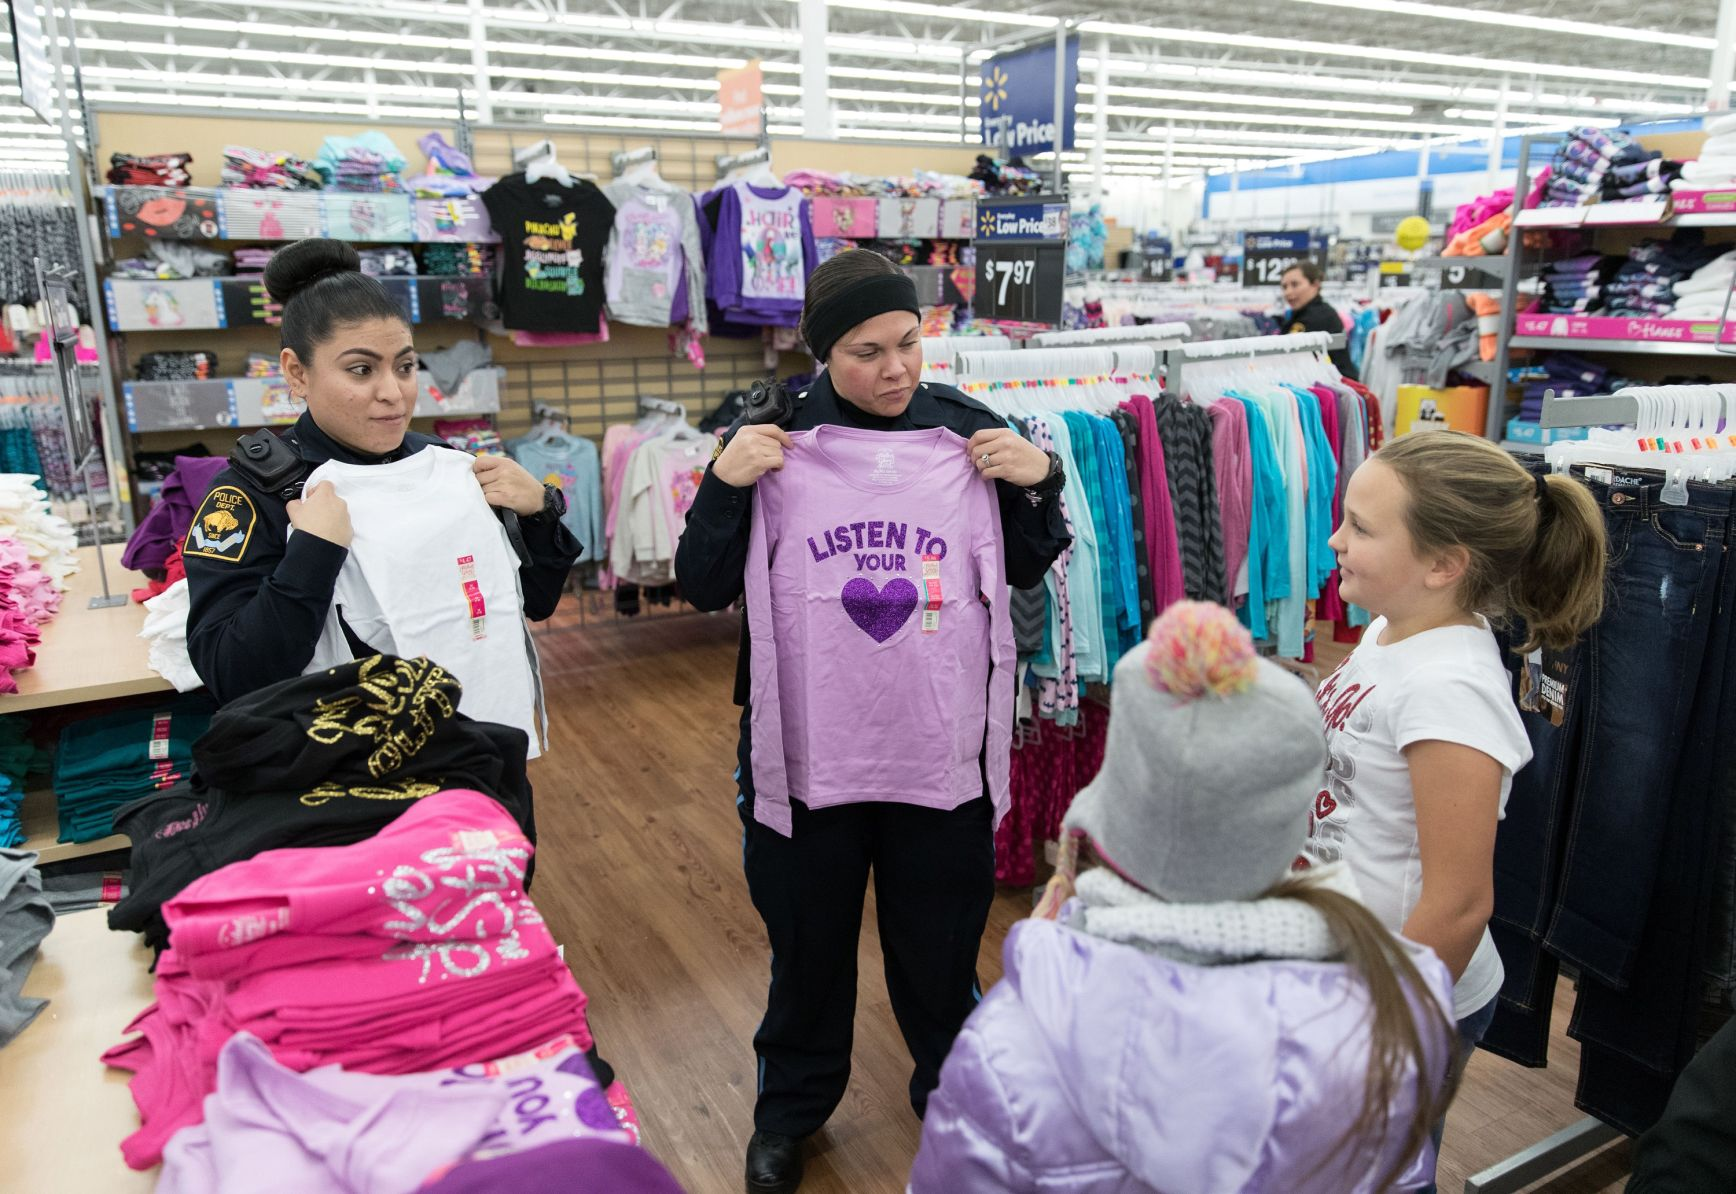 Husker football early signing period Dec. 20-22  sc 1 st  Omaha World-Herald & Officers kids from Open Door Mission make a connection in Shop ... pezcame.com